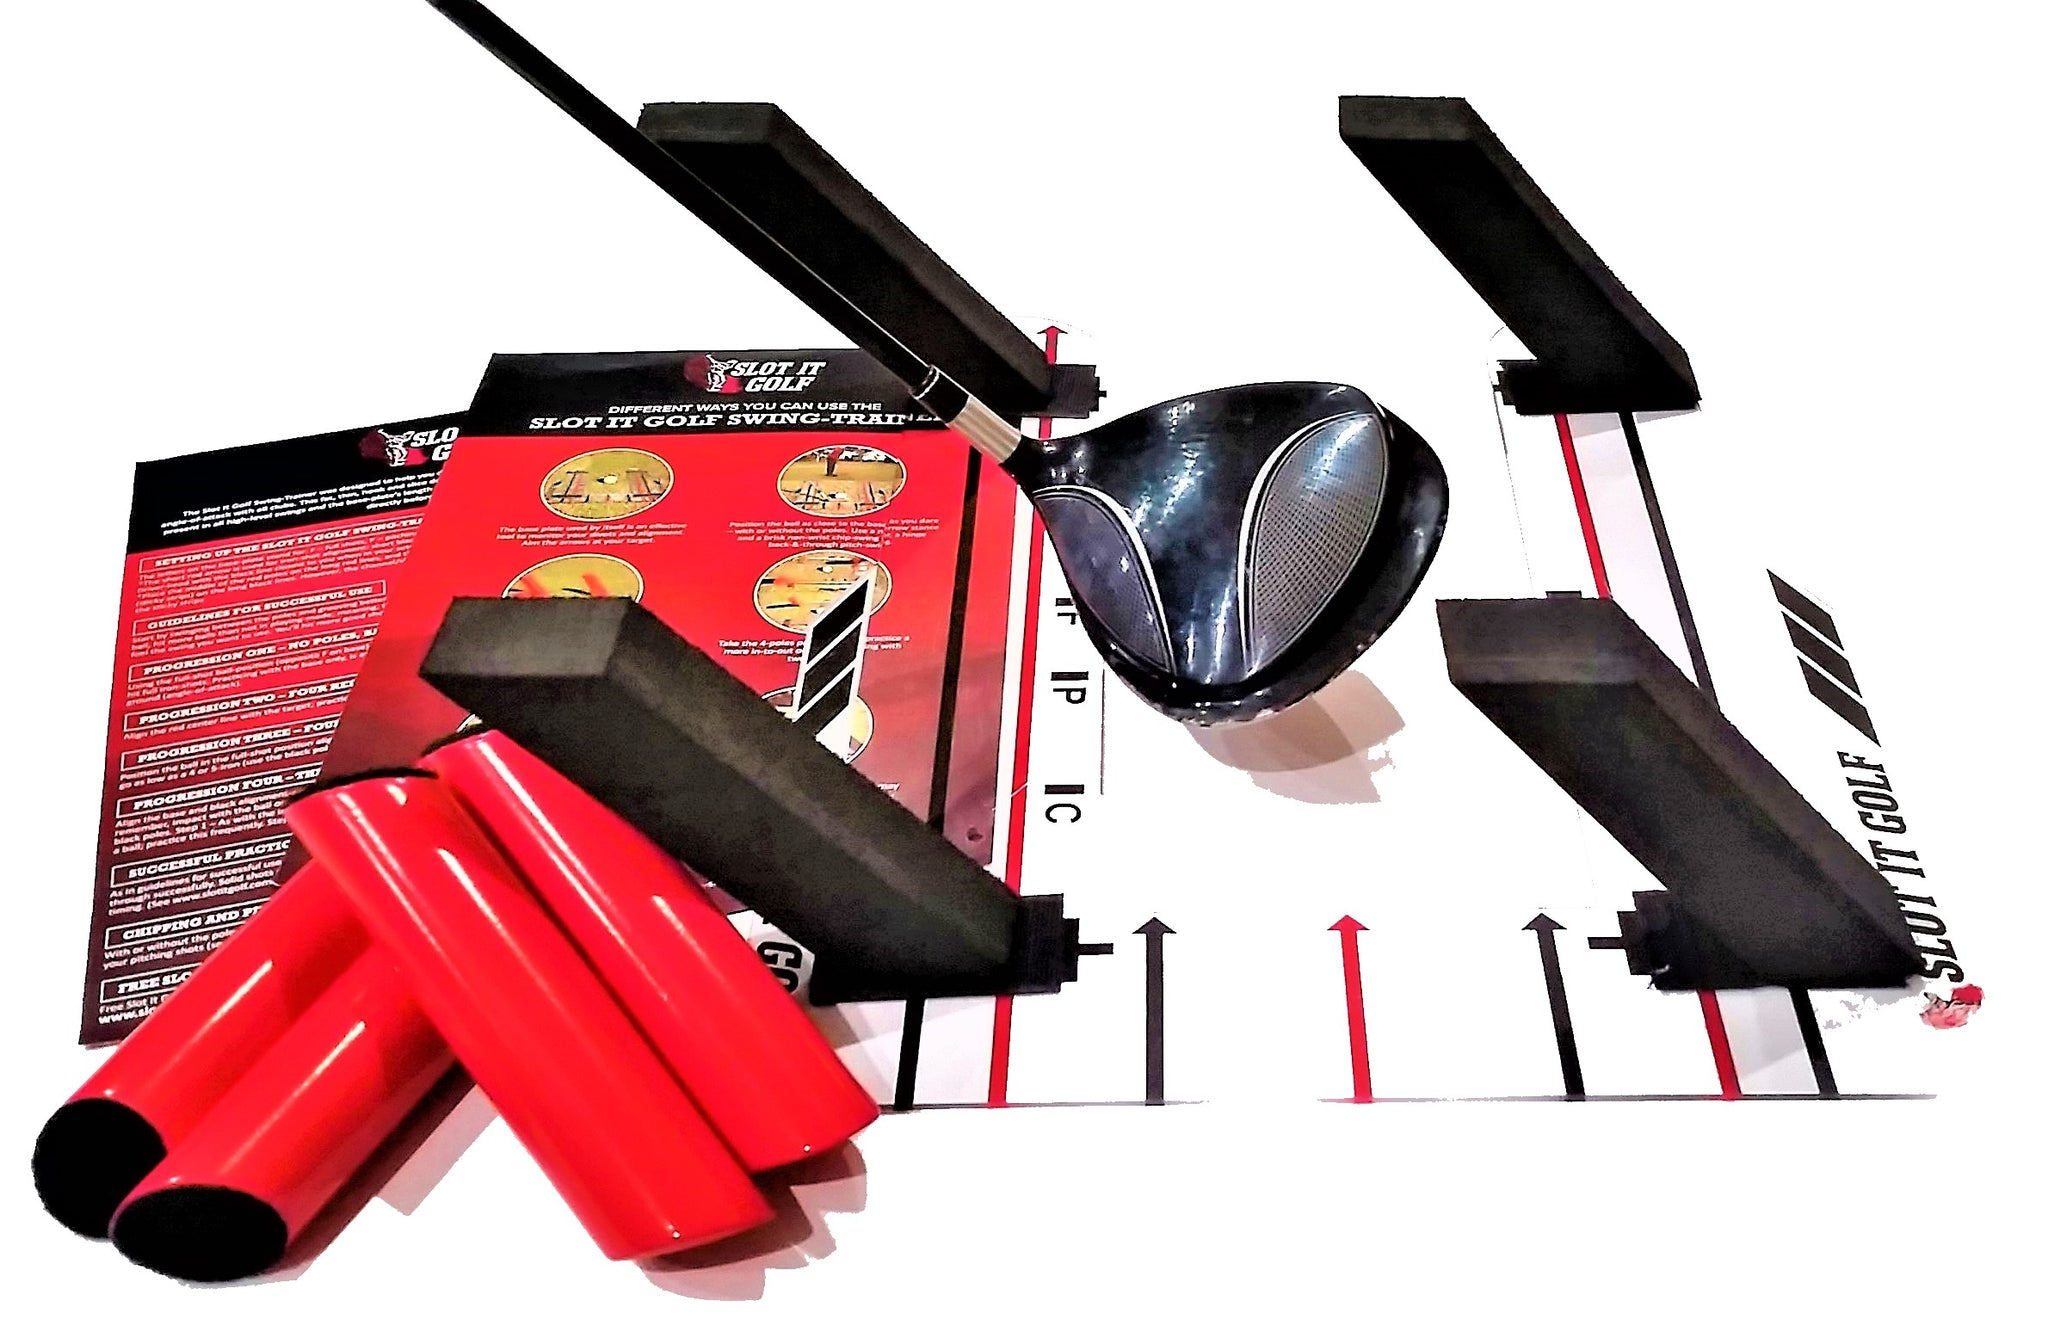 Slot It Golf Swing-Trainer, Stocked in USA for Local & International shipping